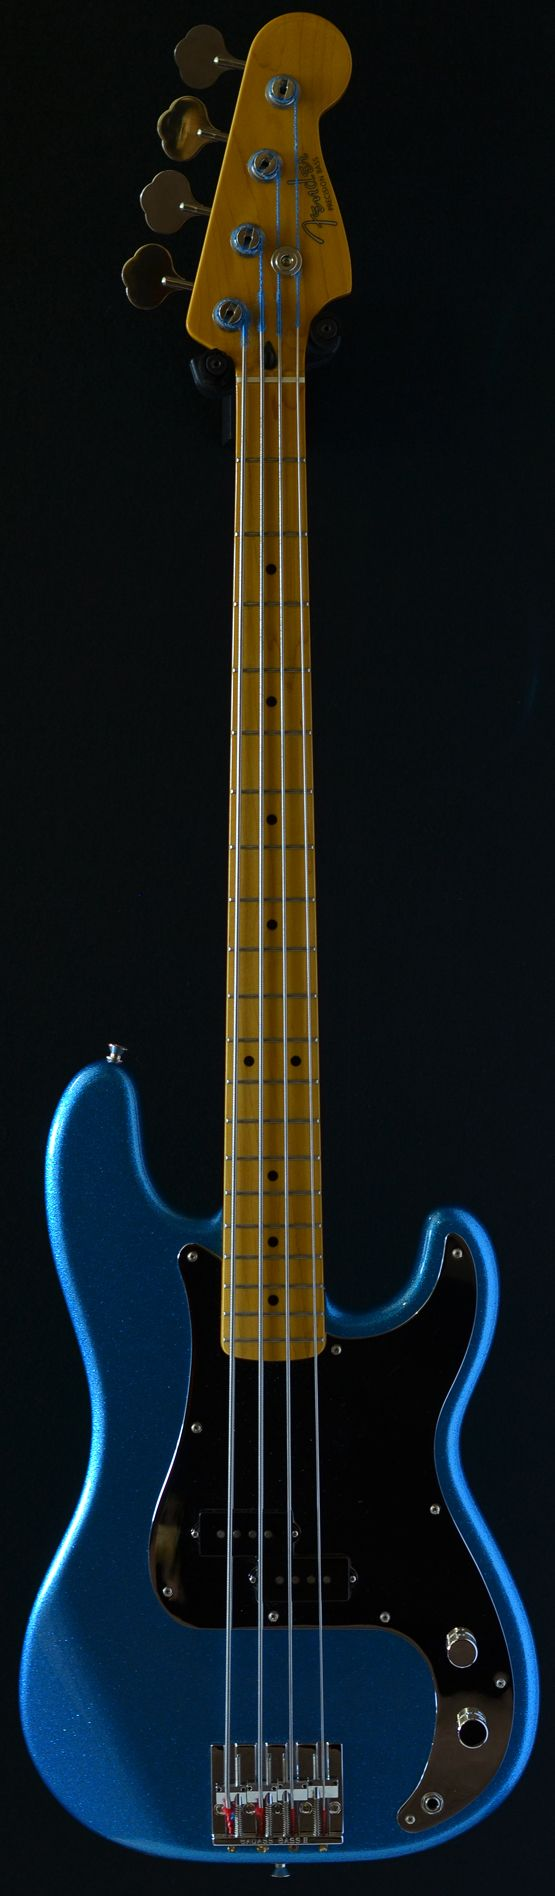 Fender Precision Steve Harris 4 string bass (via Bass Direct) #fenderguitars